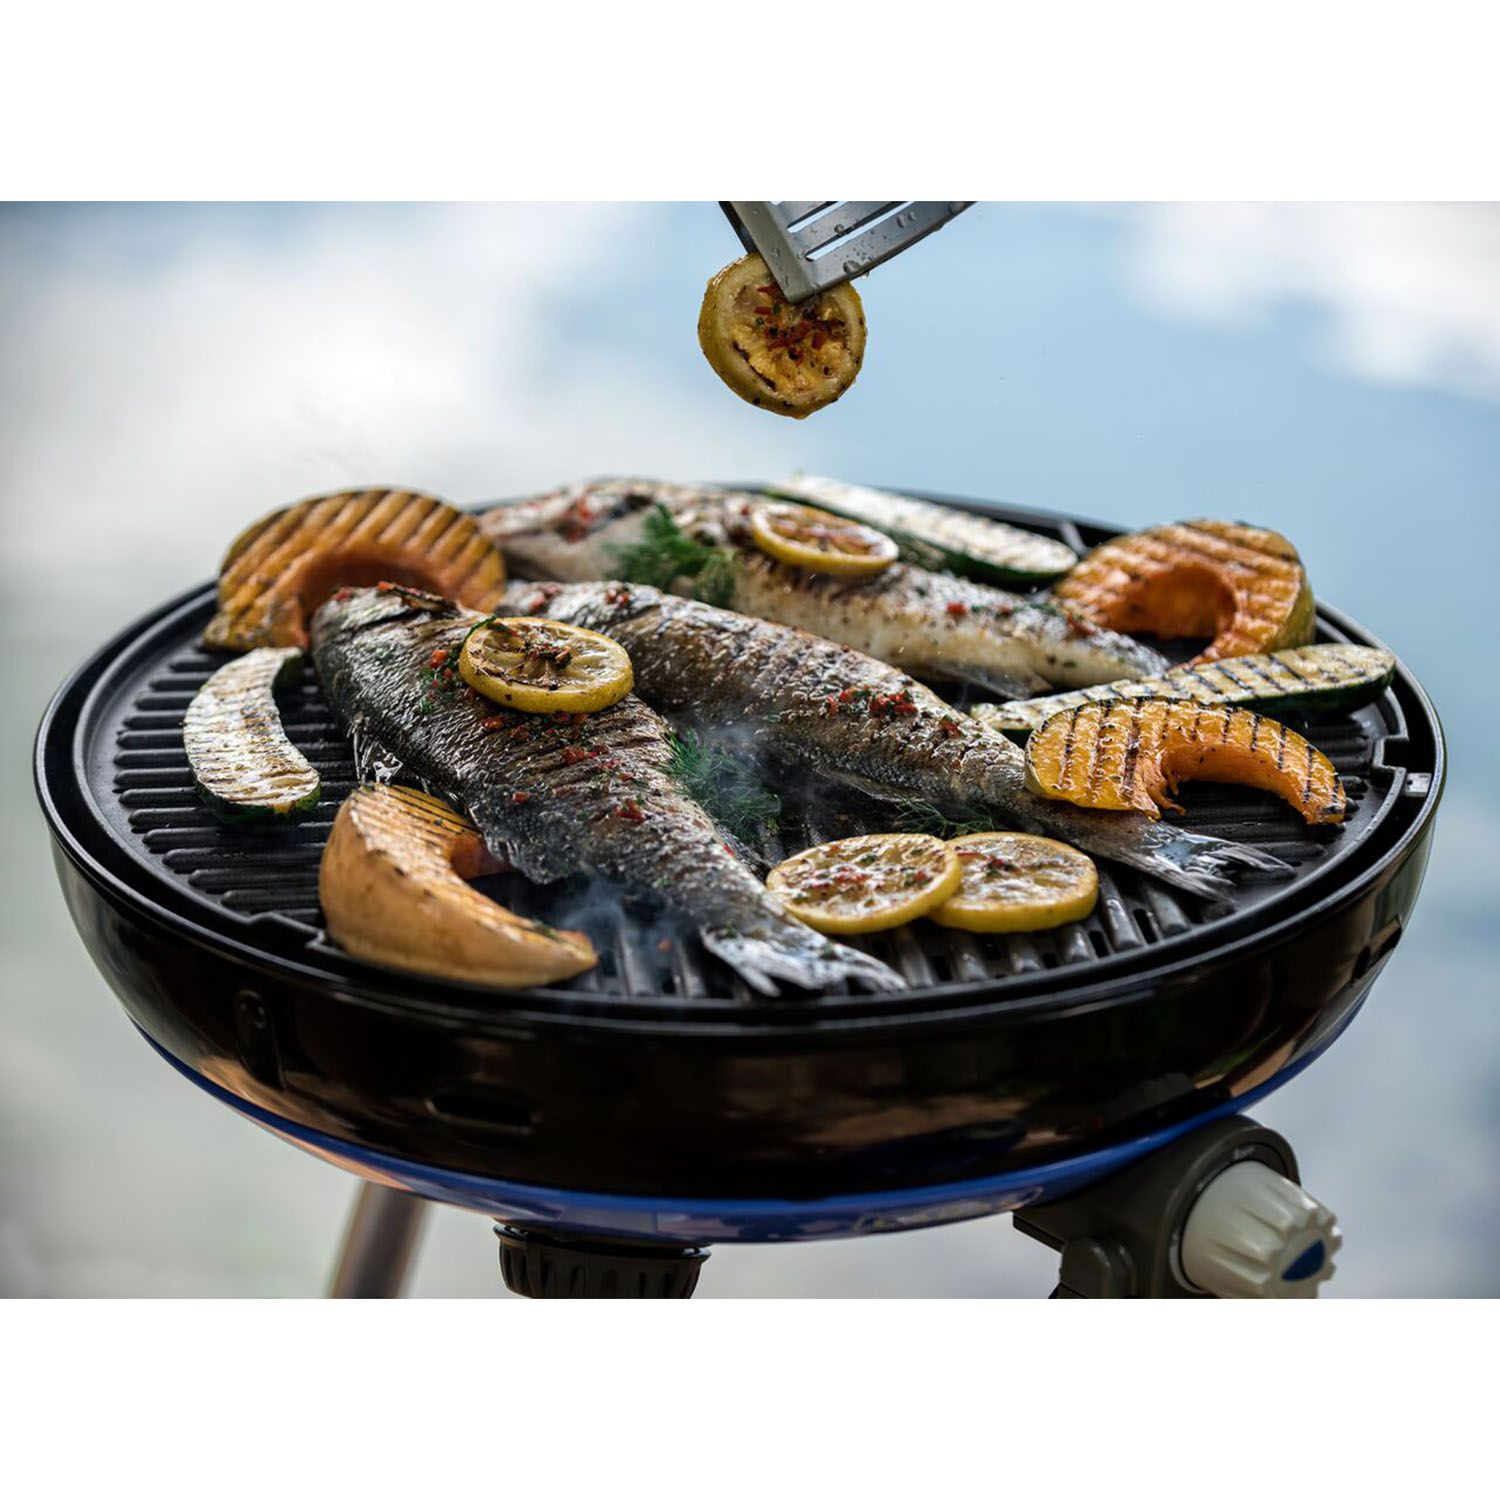 Cadac Carri Chef 2 Portable Grill With Pot Ring Grill Plate And Chef Pan Grill Plate Portable Grill Chef